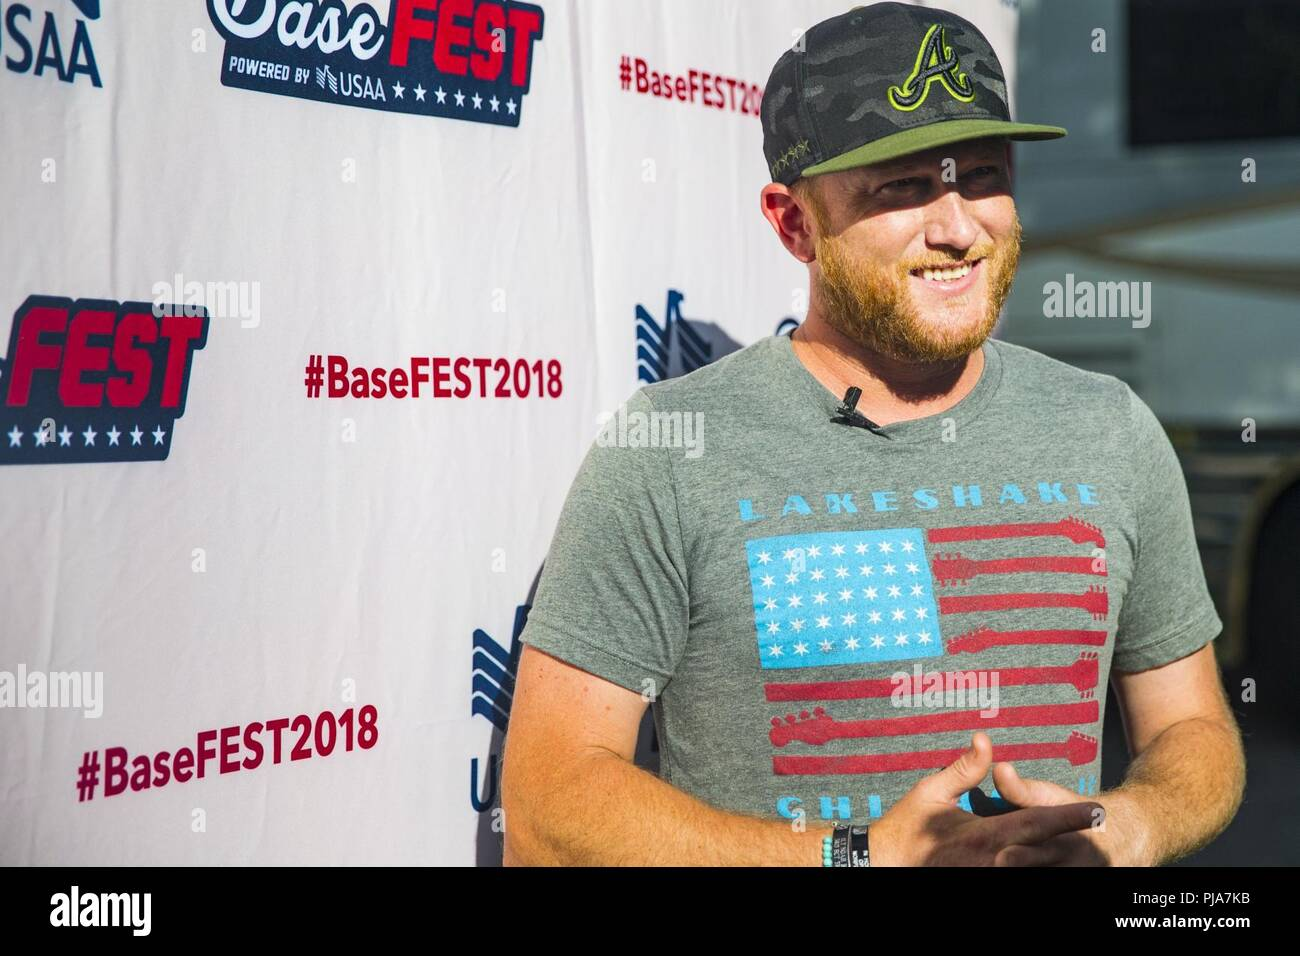 Cole swindell stock photos cole swindell stock images alamy cole swindell lead singer cole swindell band hosts a meet and greet with m4hsunfo